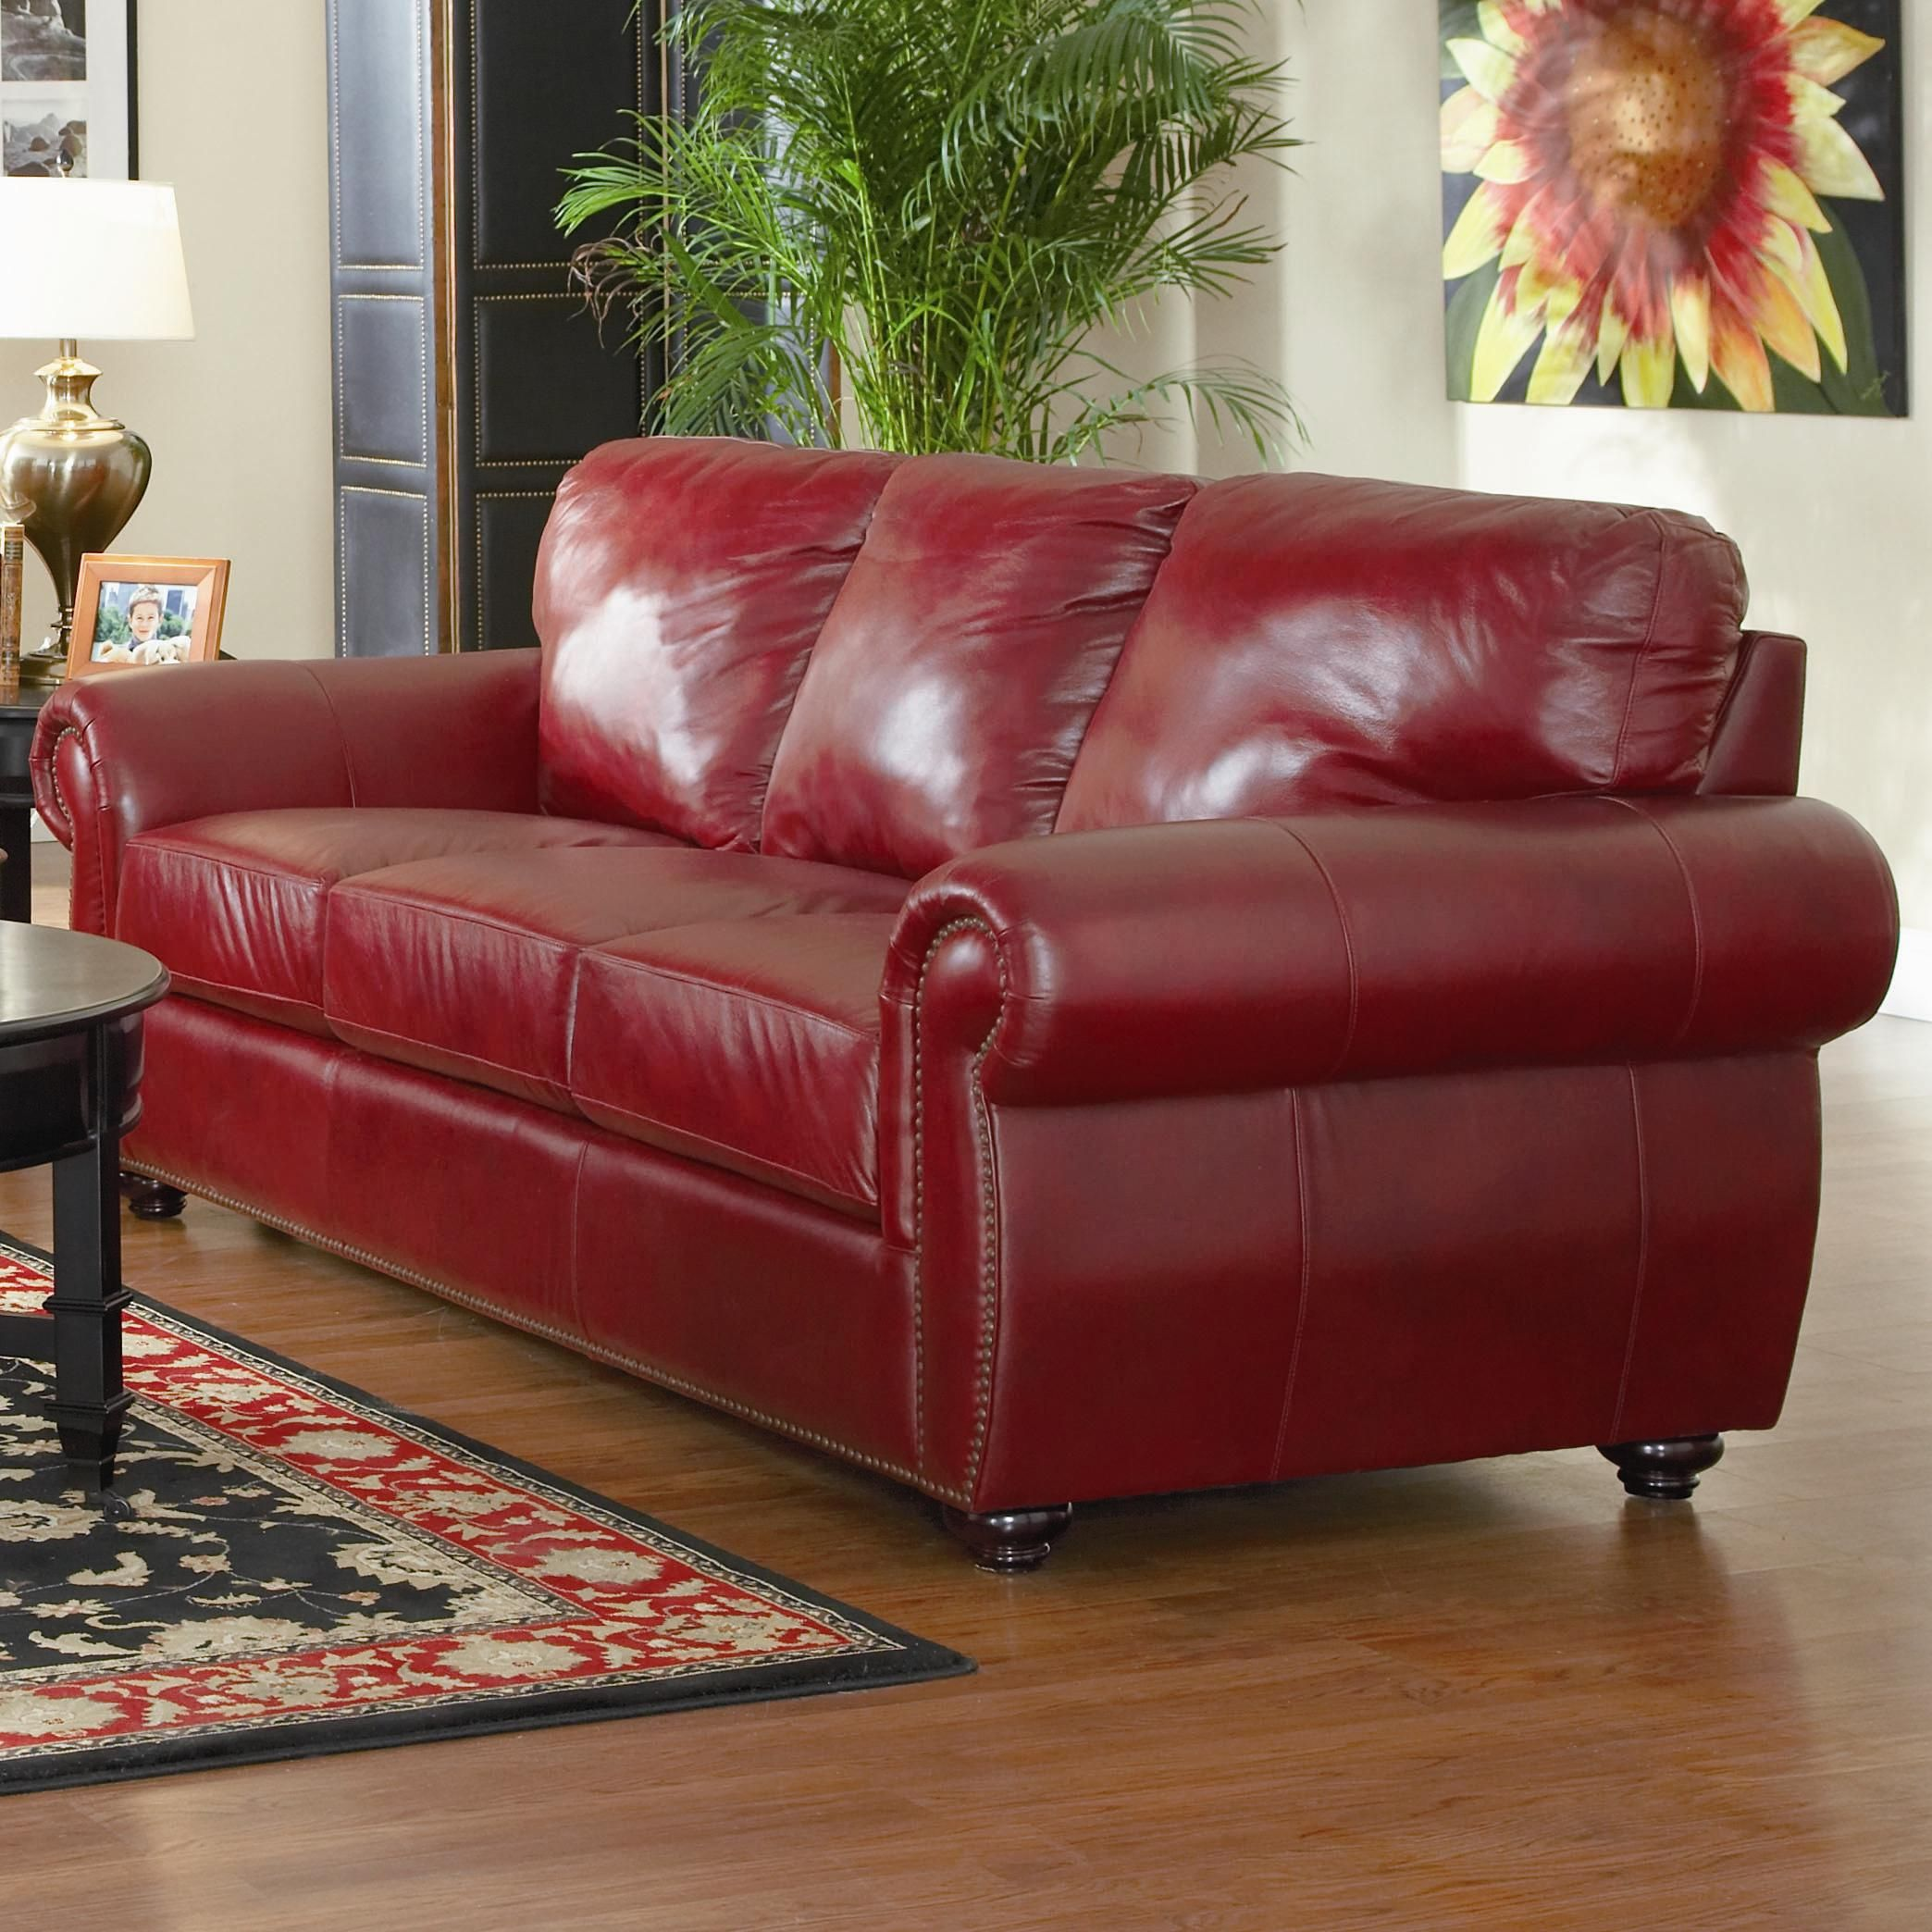 chinese red leather sofa